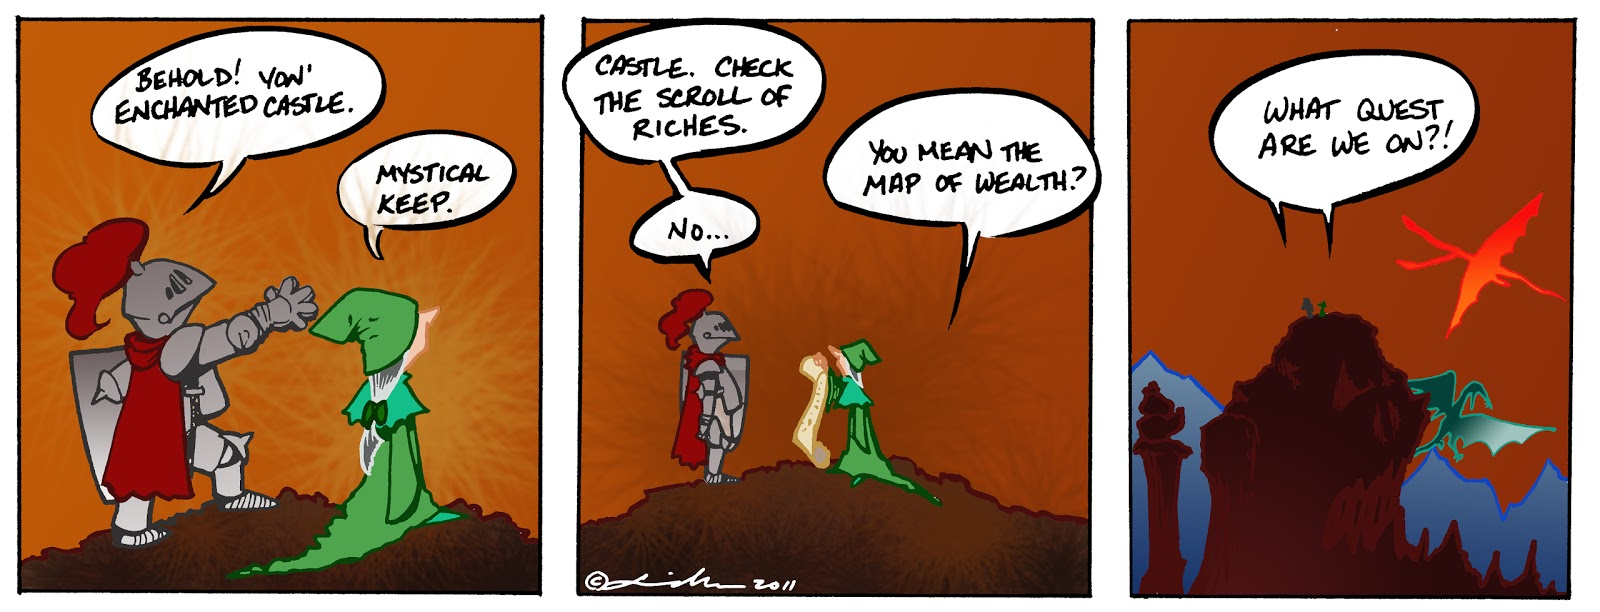 Dungeon and dragons cartoon strip